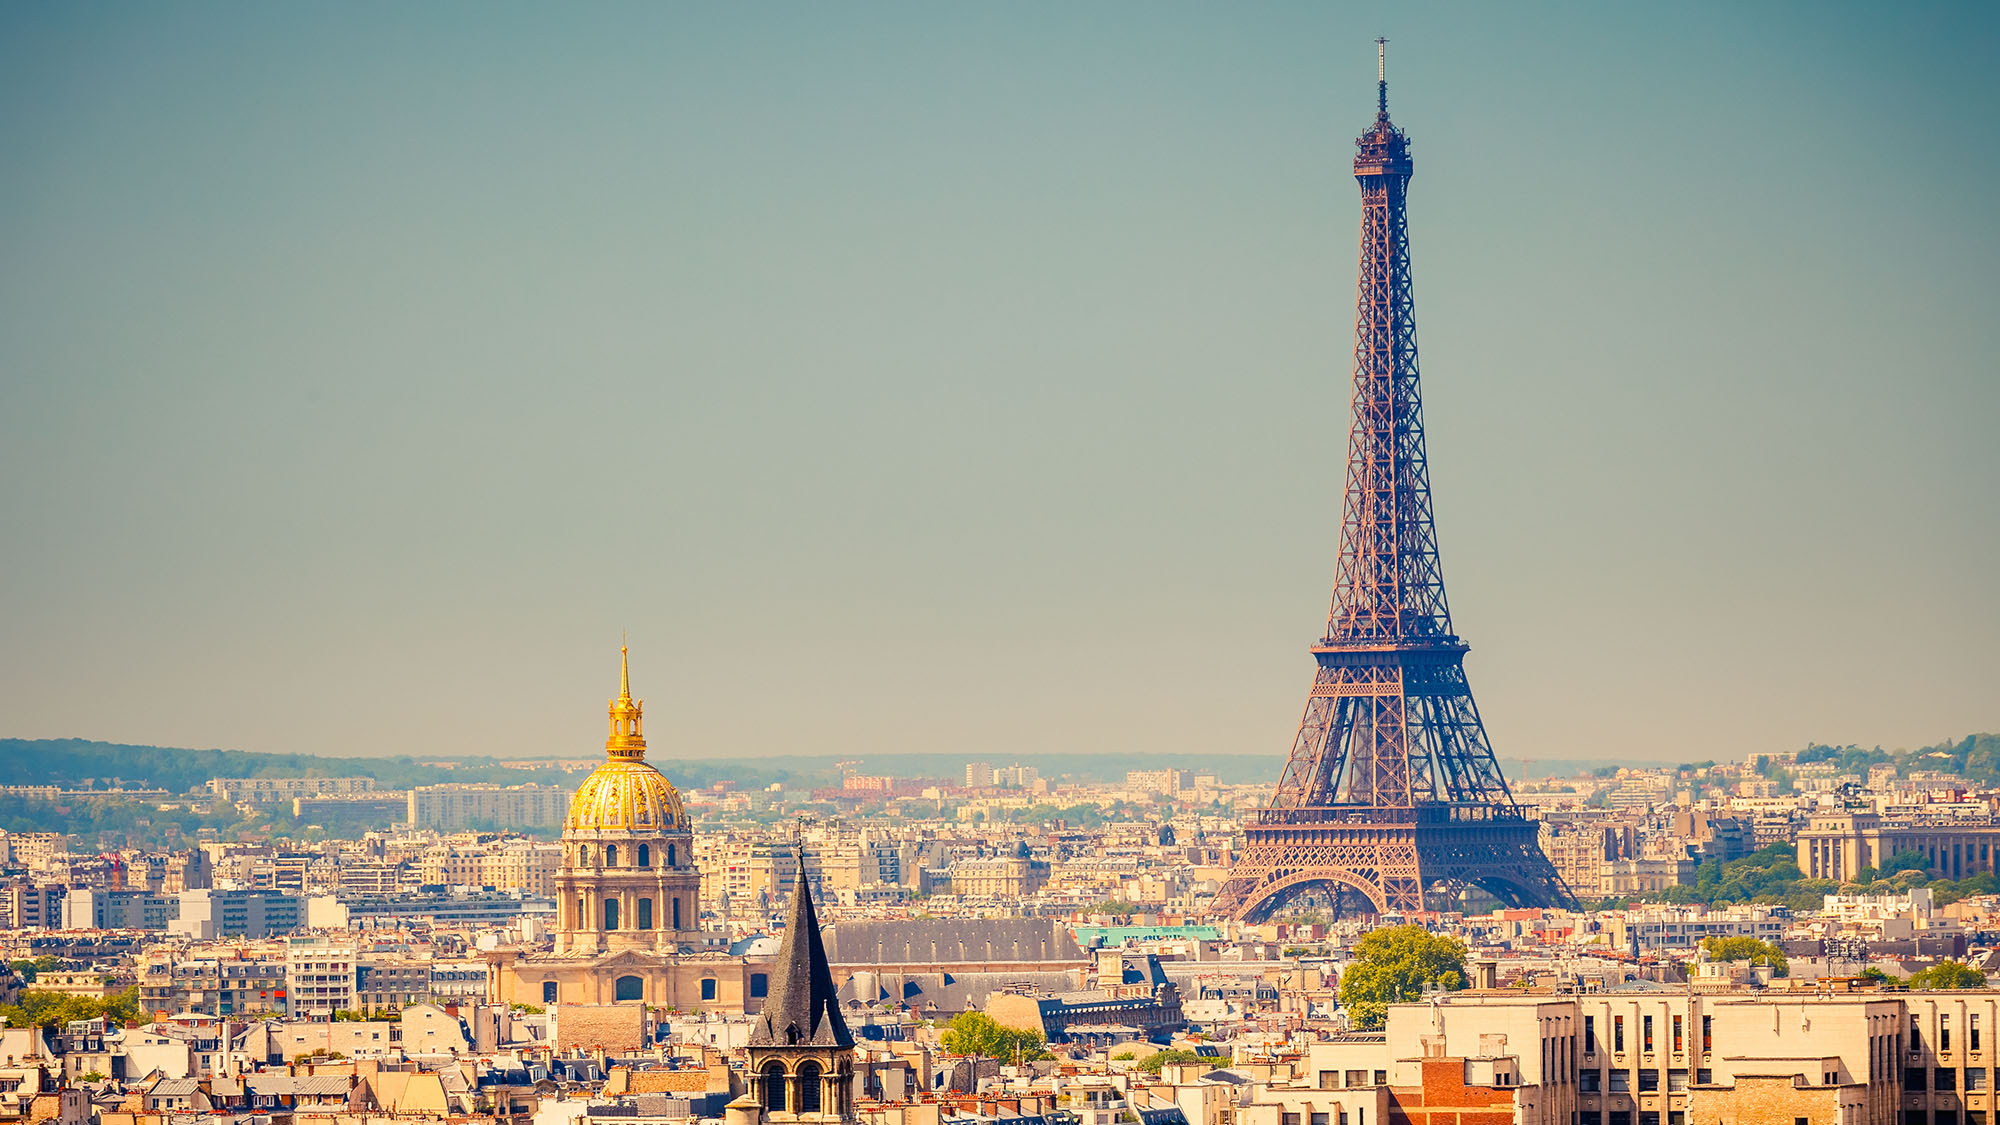 Eiffel Tower closed because of pickpockets